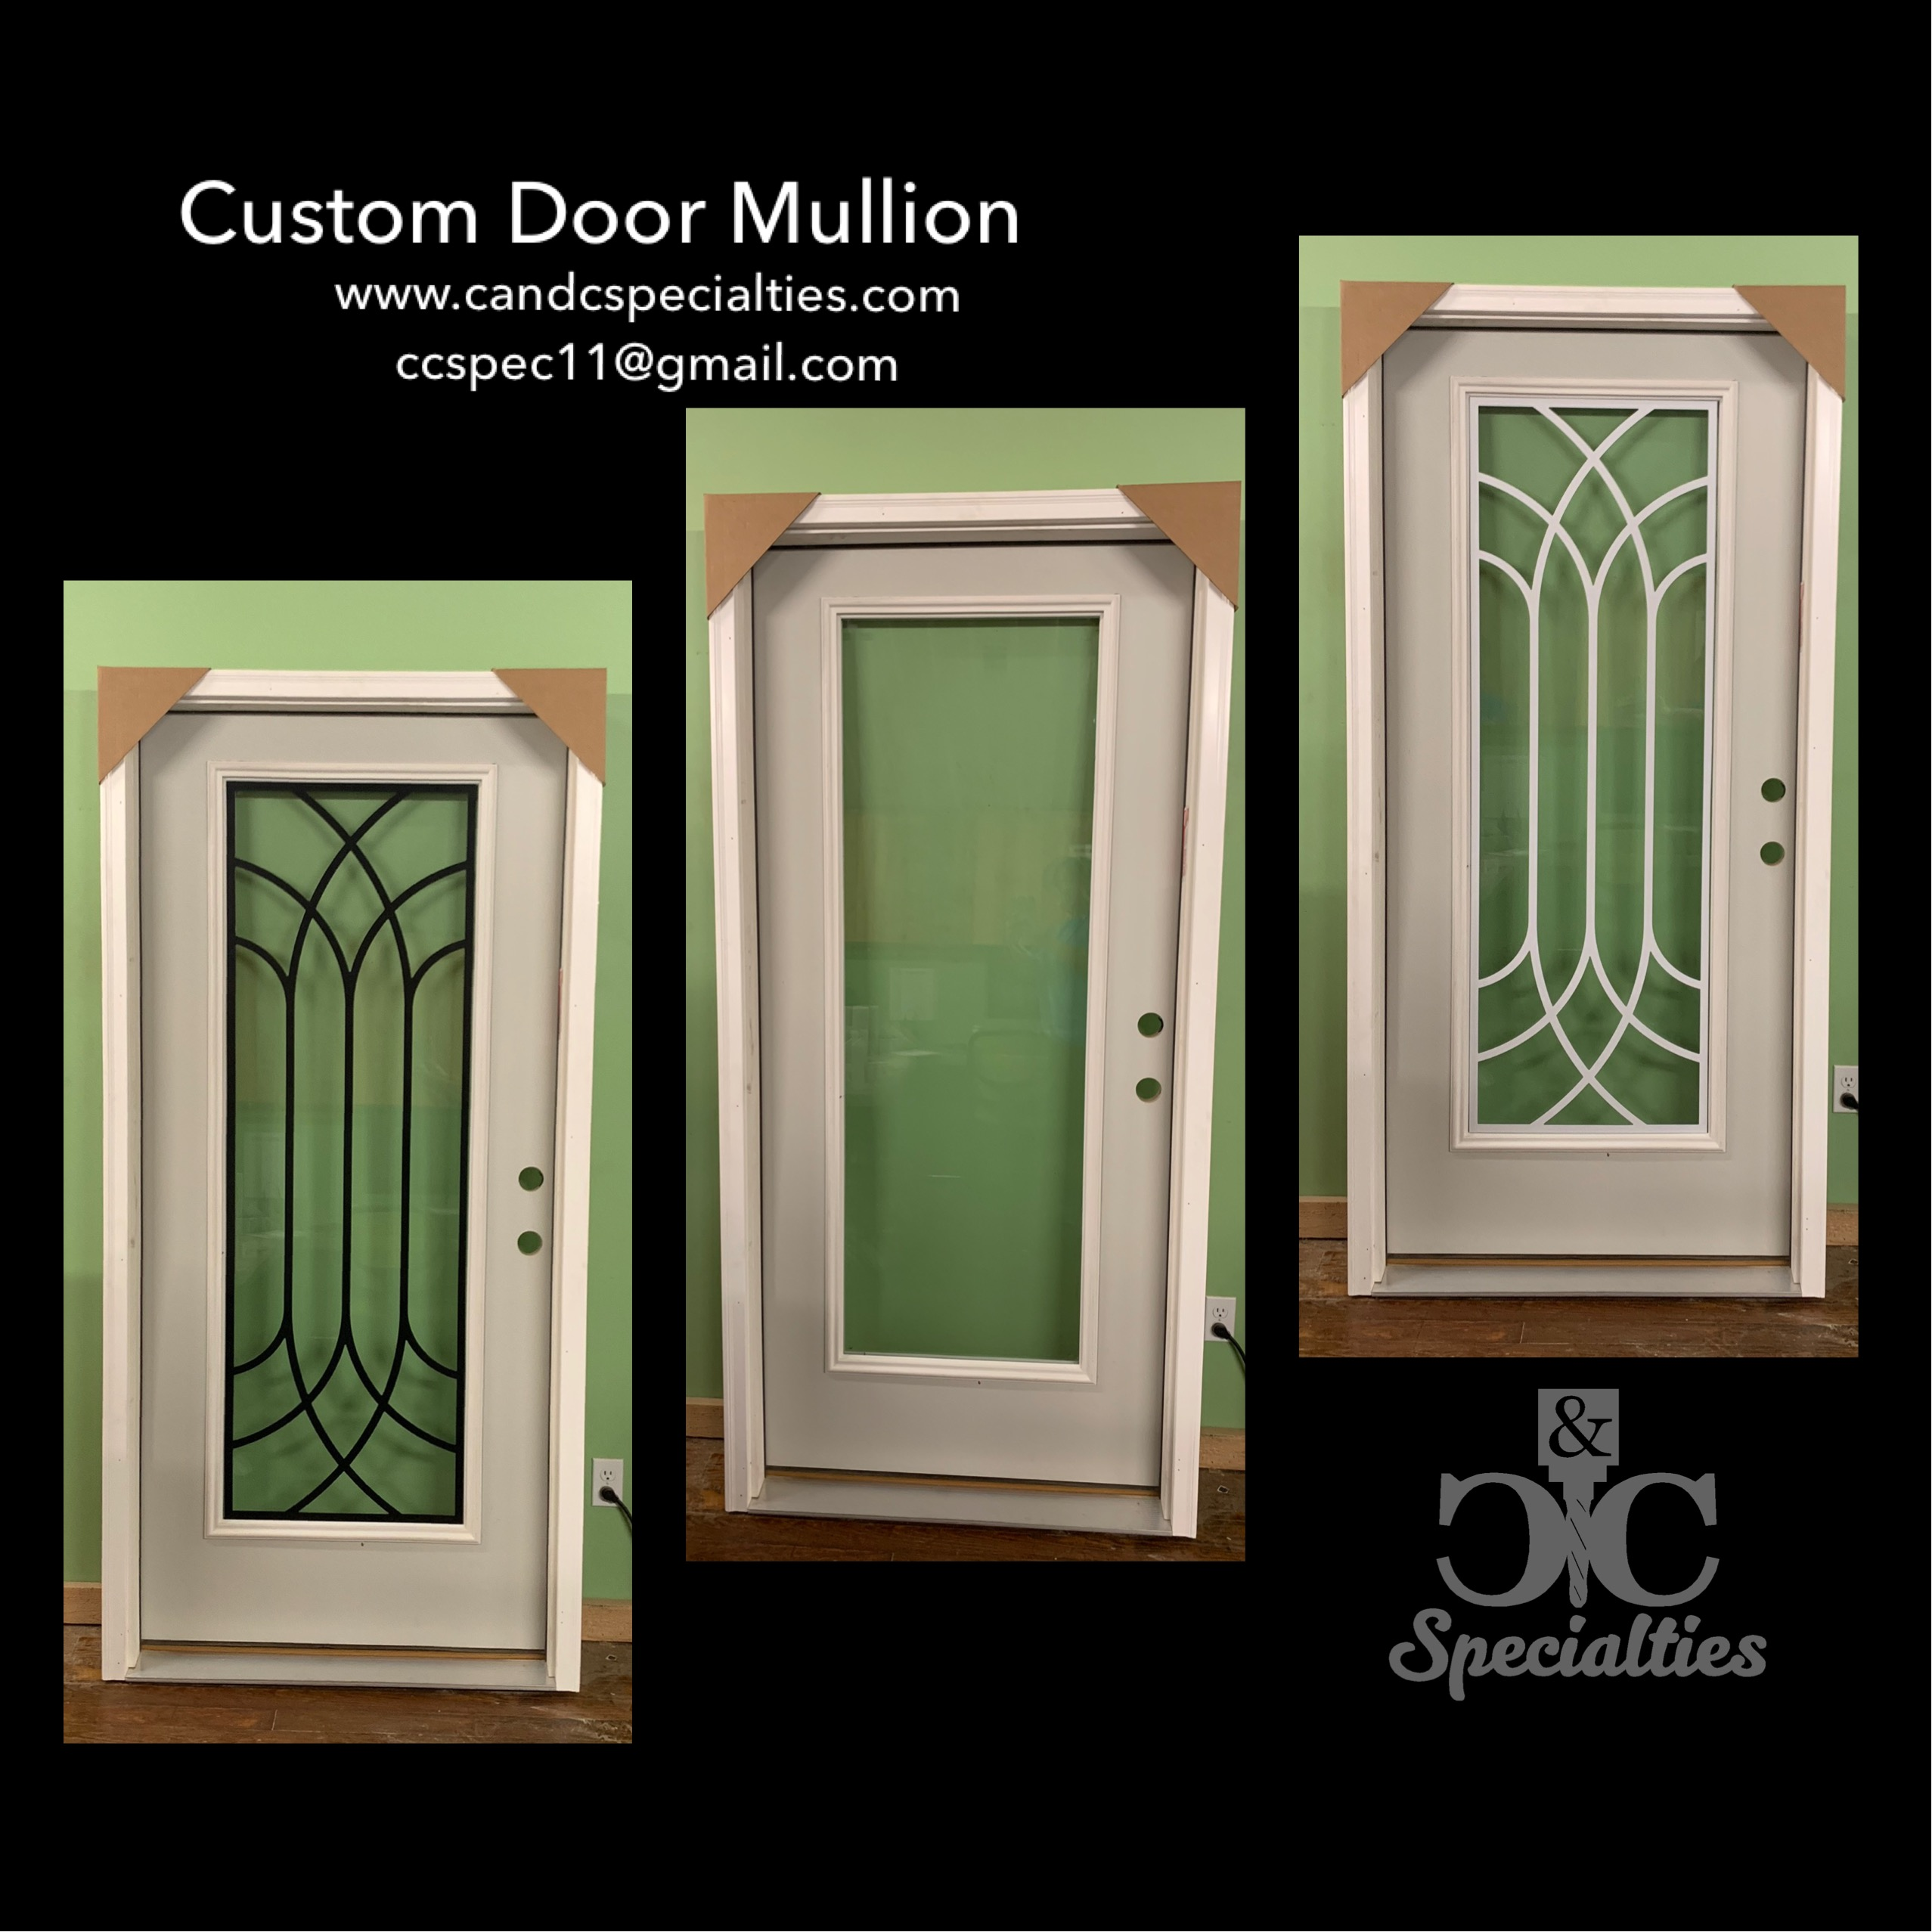 Entrance Doors Shop Mullions Grids Mullions Grids Entrance Doors